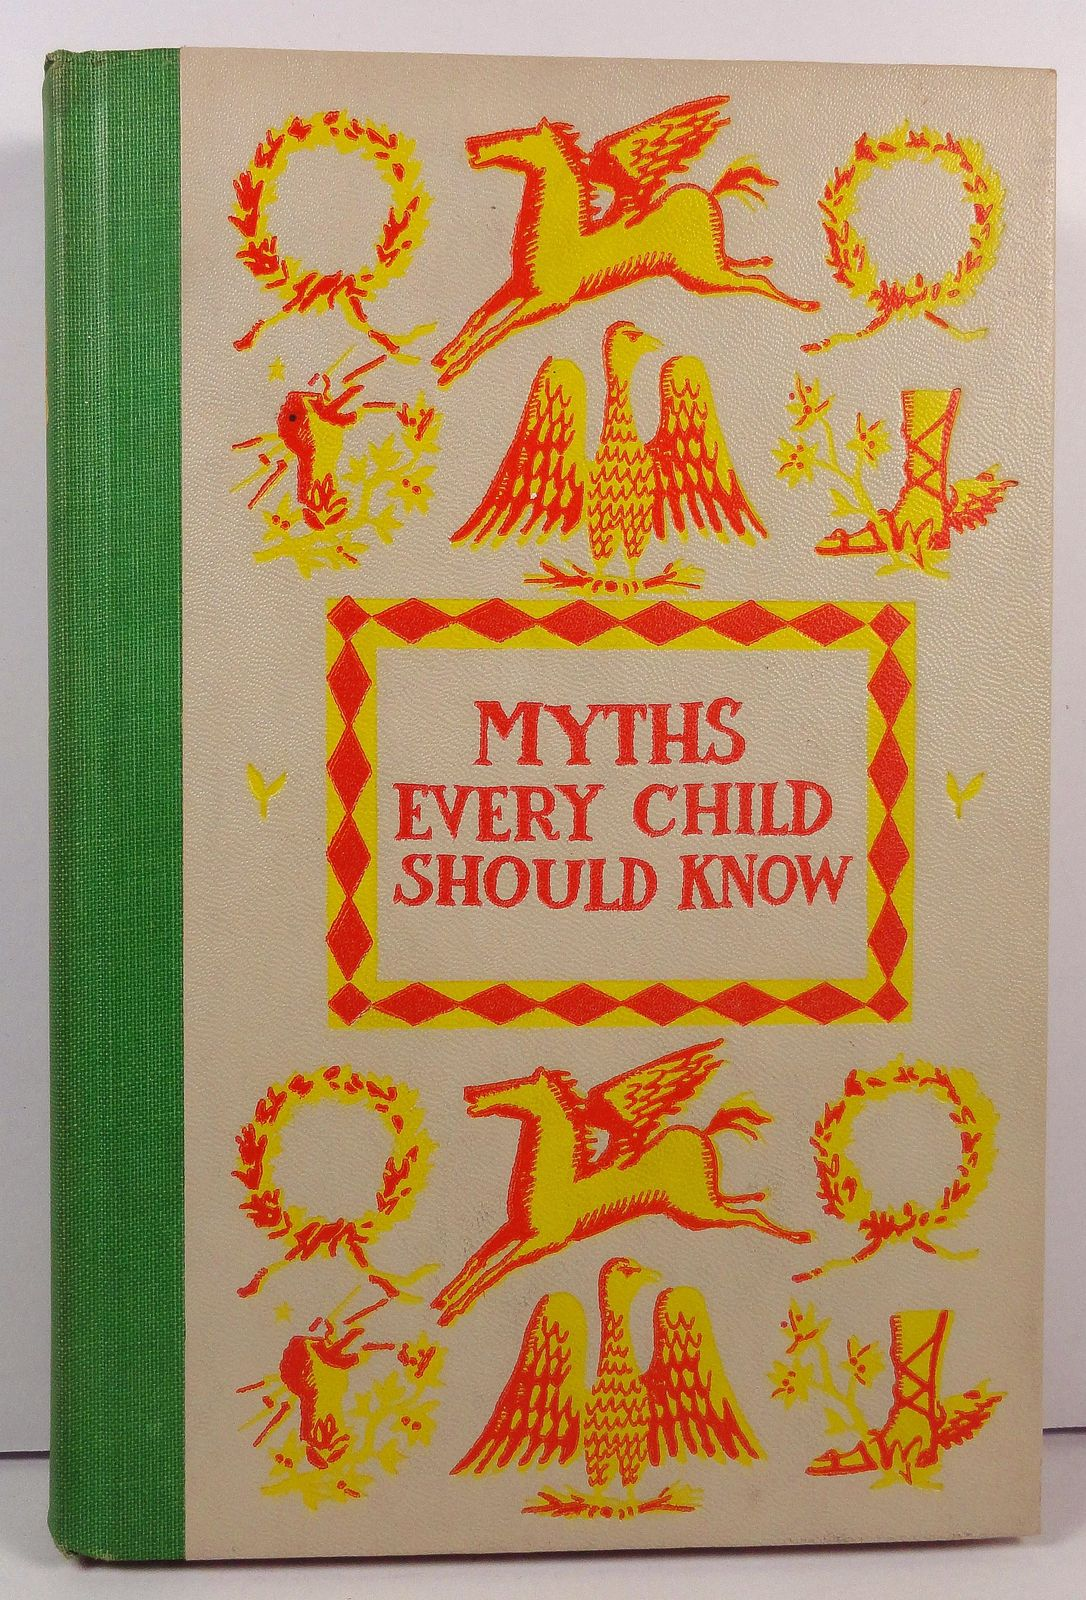 Myths Every Child Should Know by Hamilton Wright Mabie